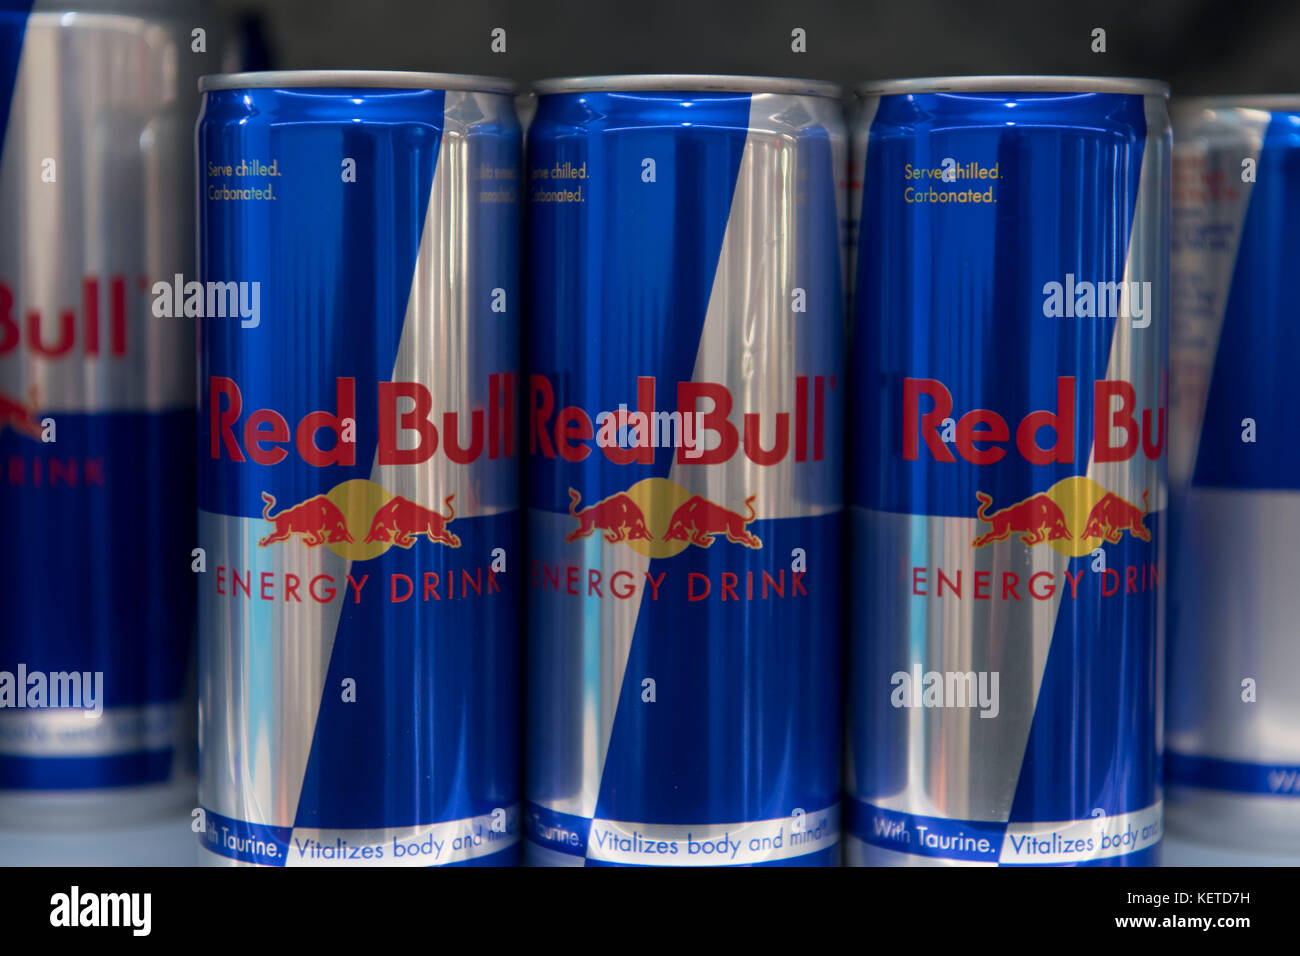 Red Bull Kühlschrank Dose Neu Kaufen : Cans red bull stockfotos cans red bull bilder alamy